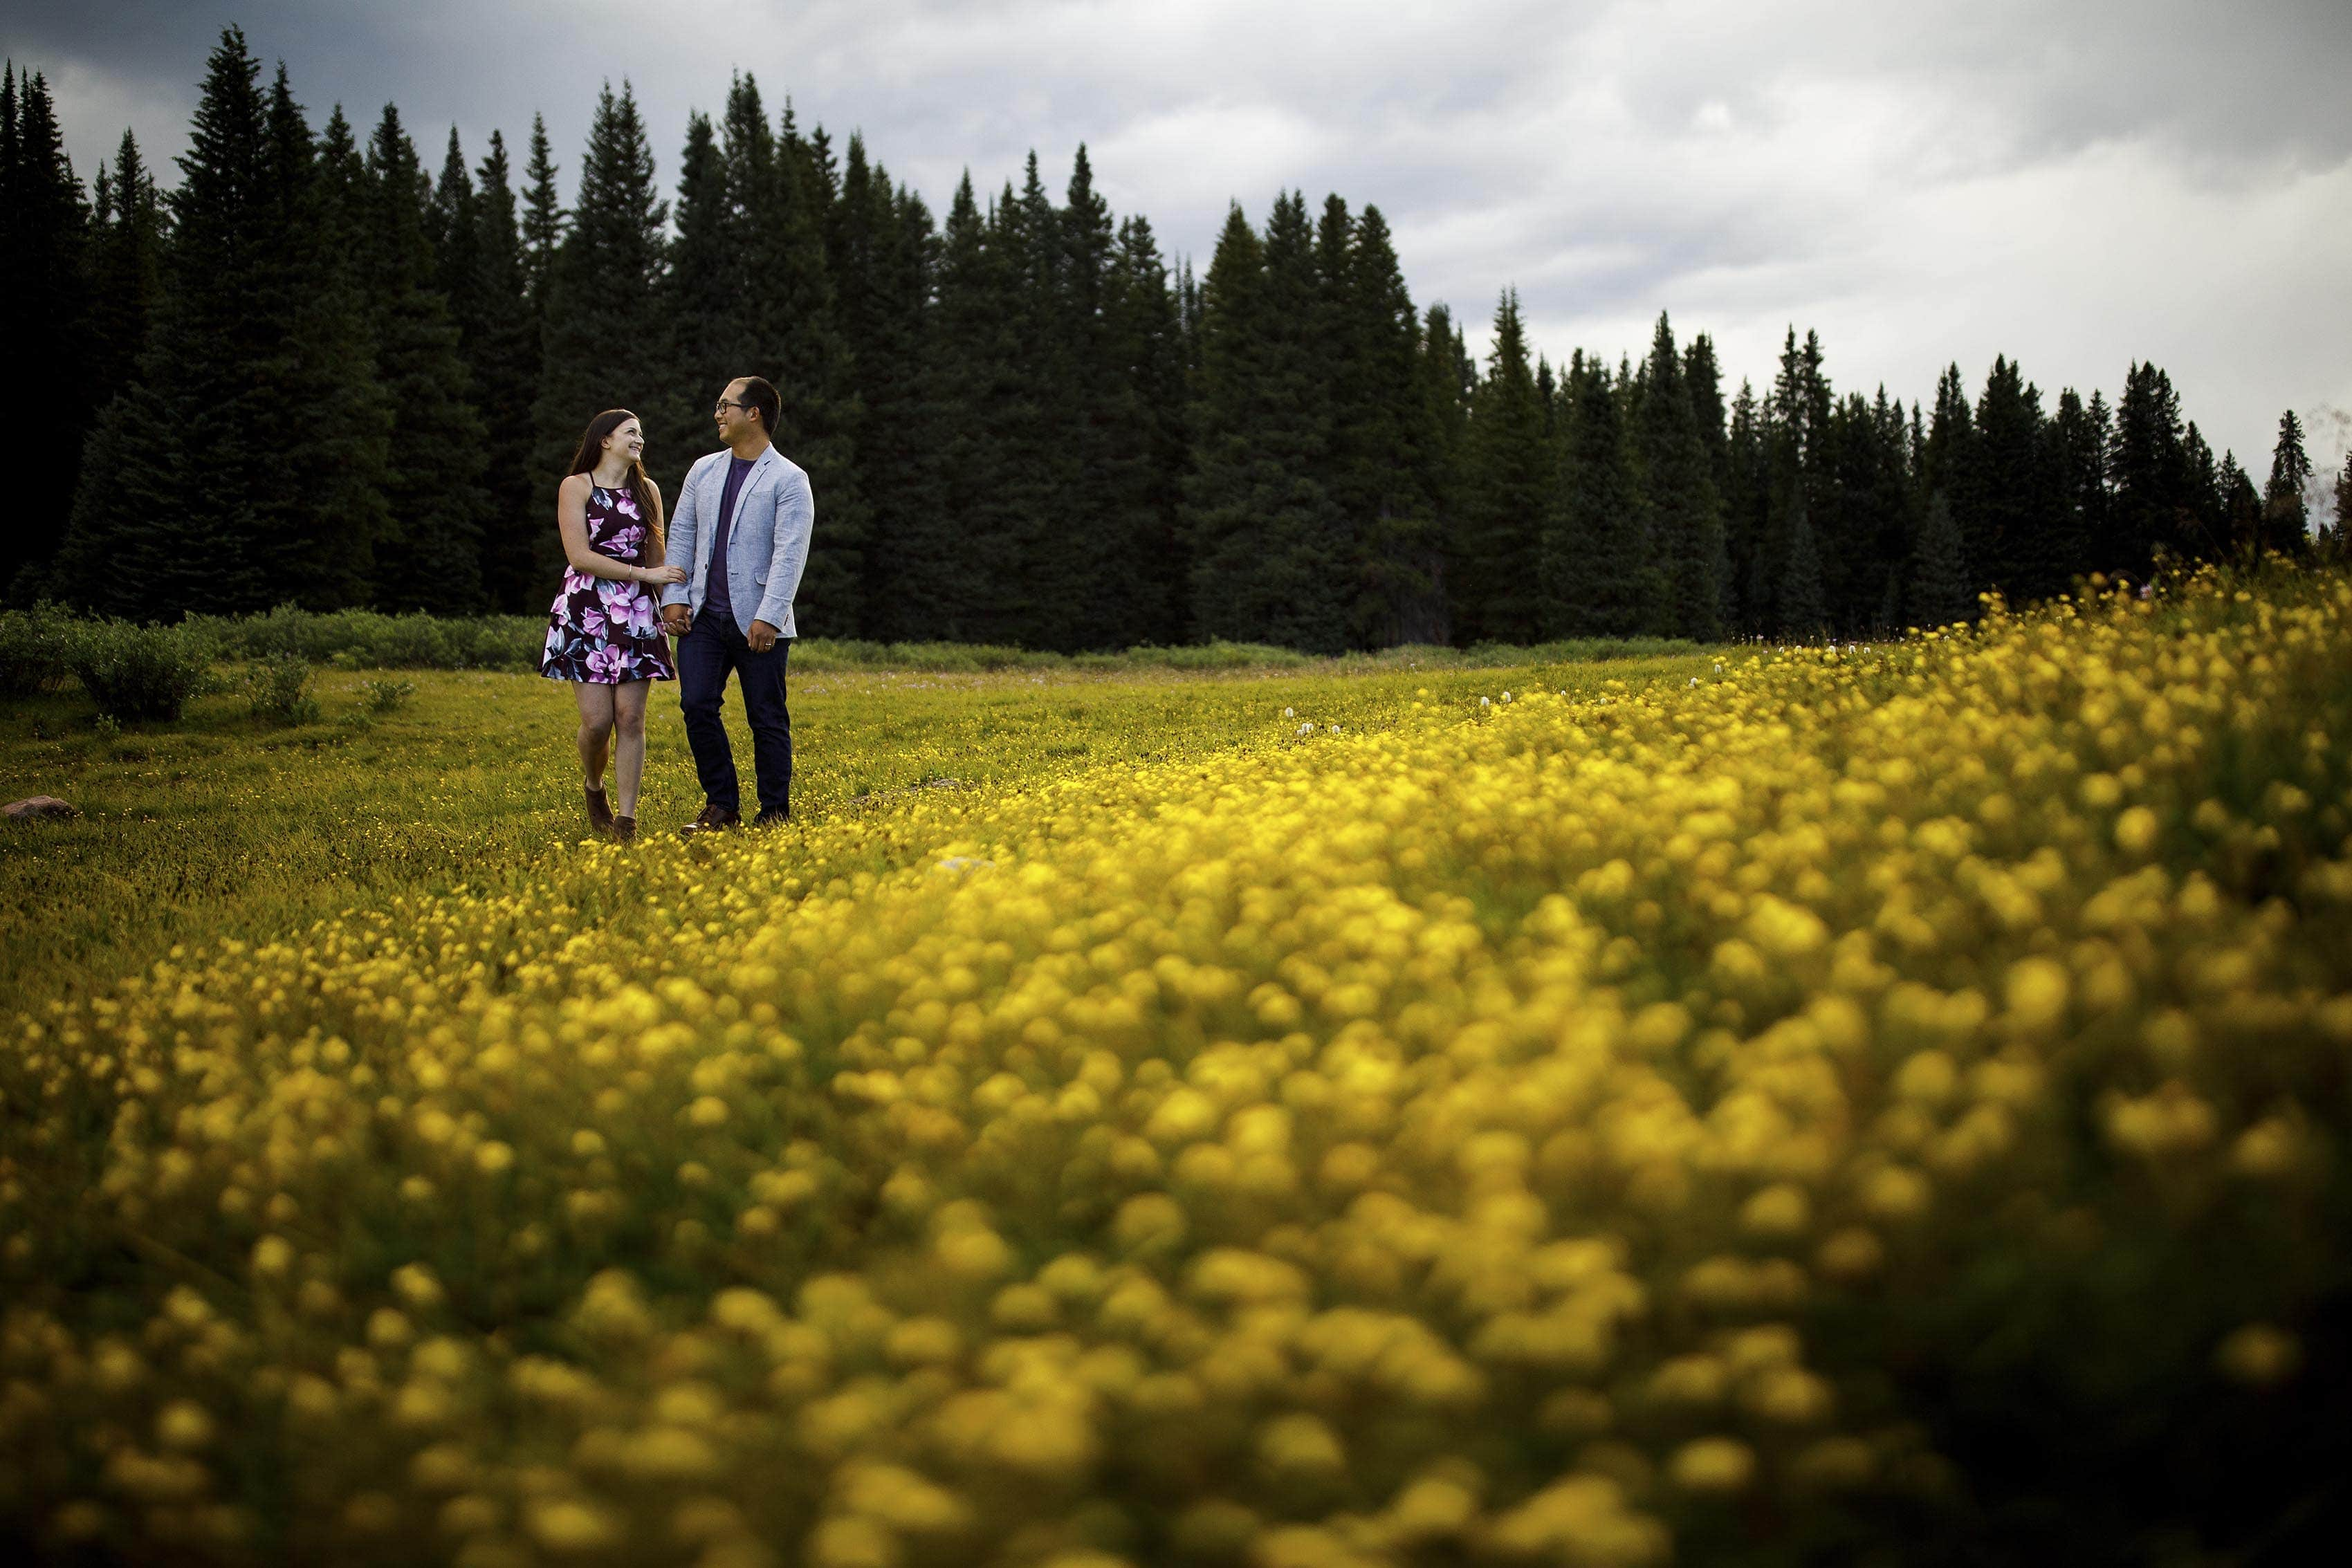 Courtney and Mike walk through a field of yellow wild flowers during their Shrine Pass engagement session in Colorado